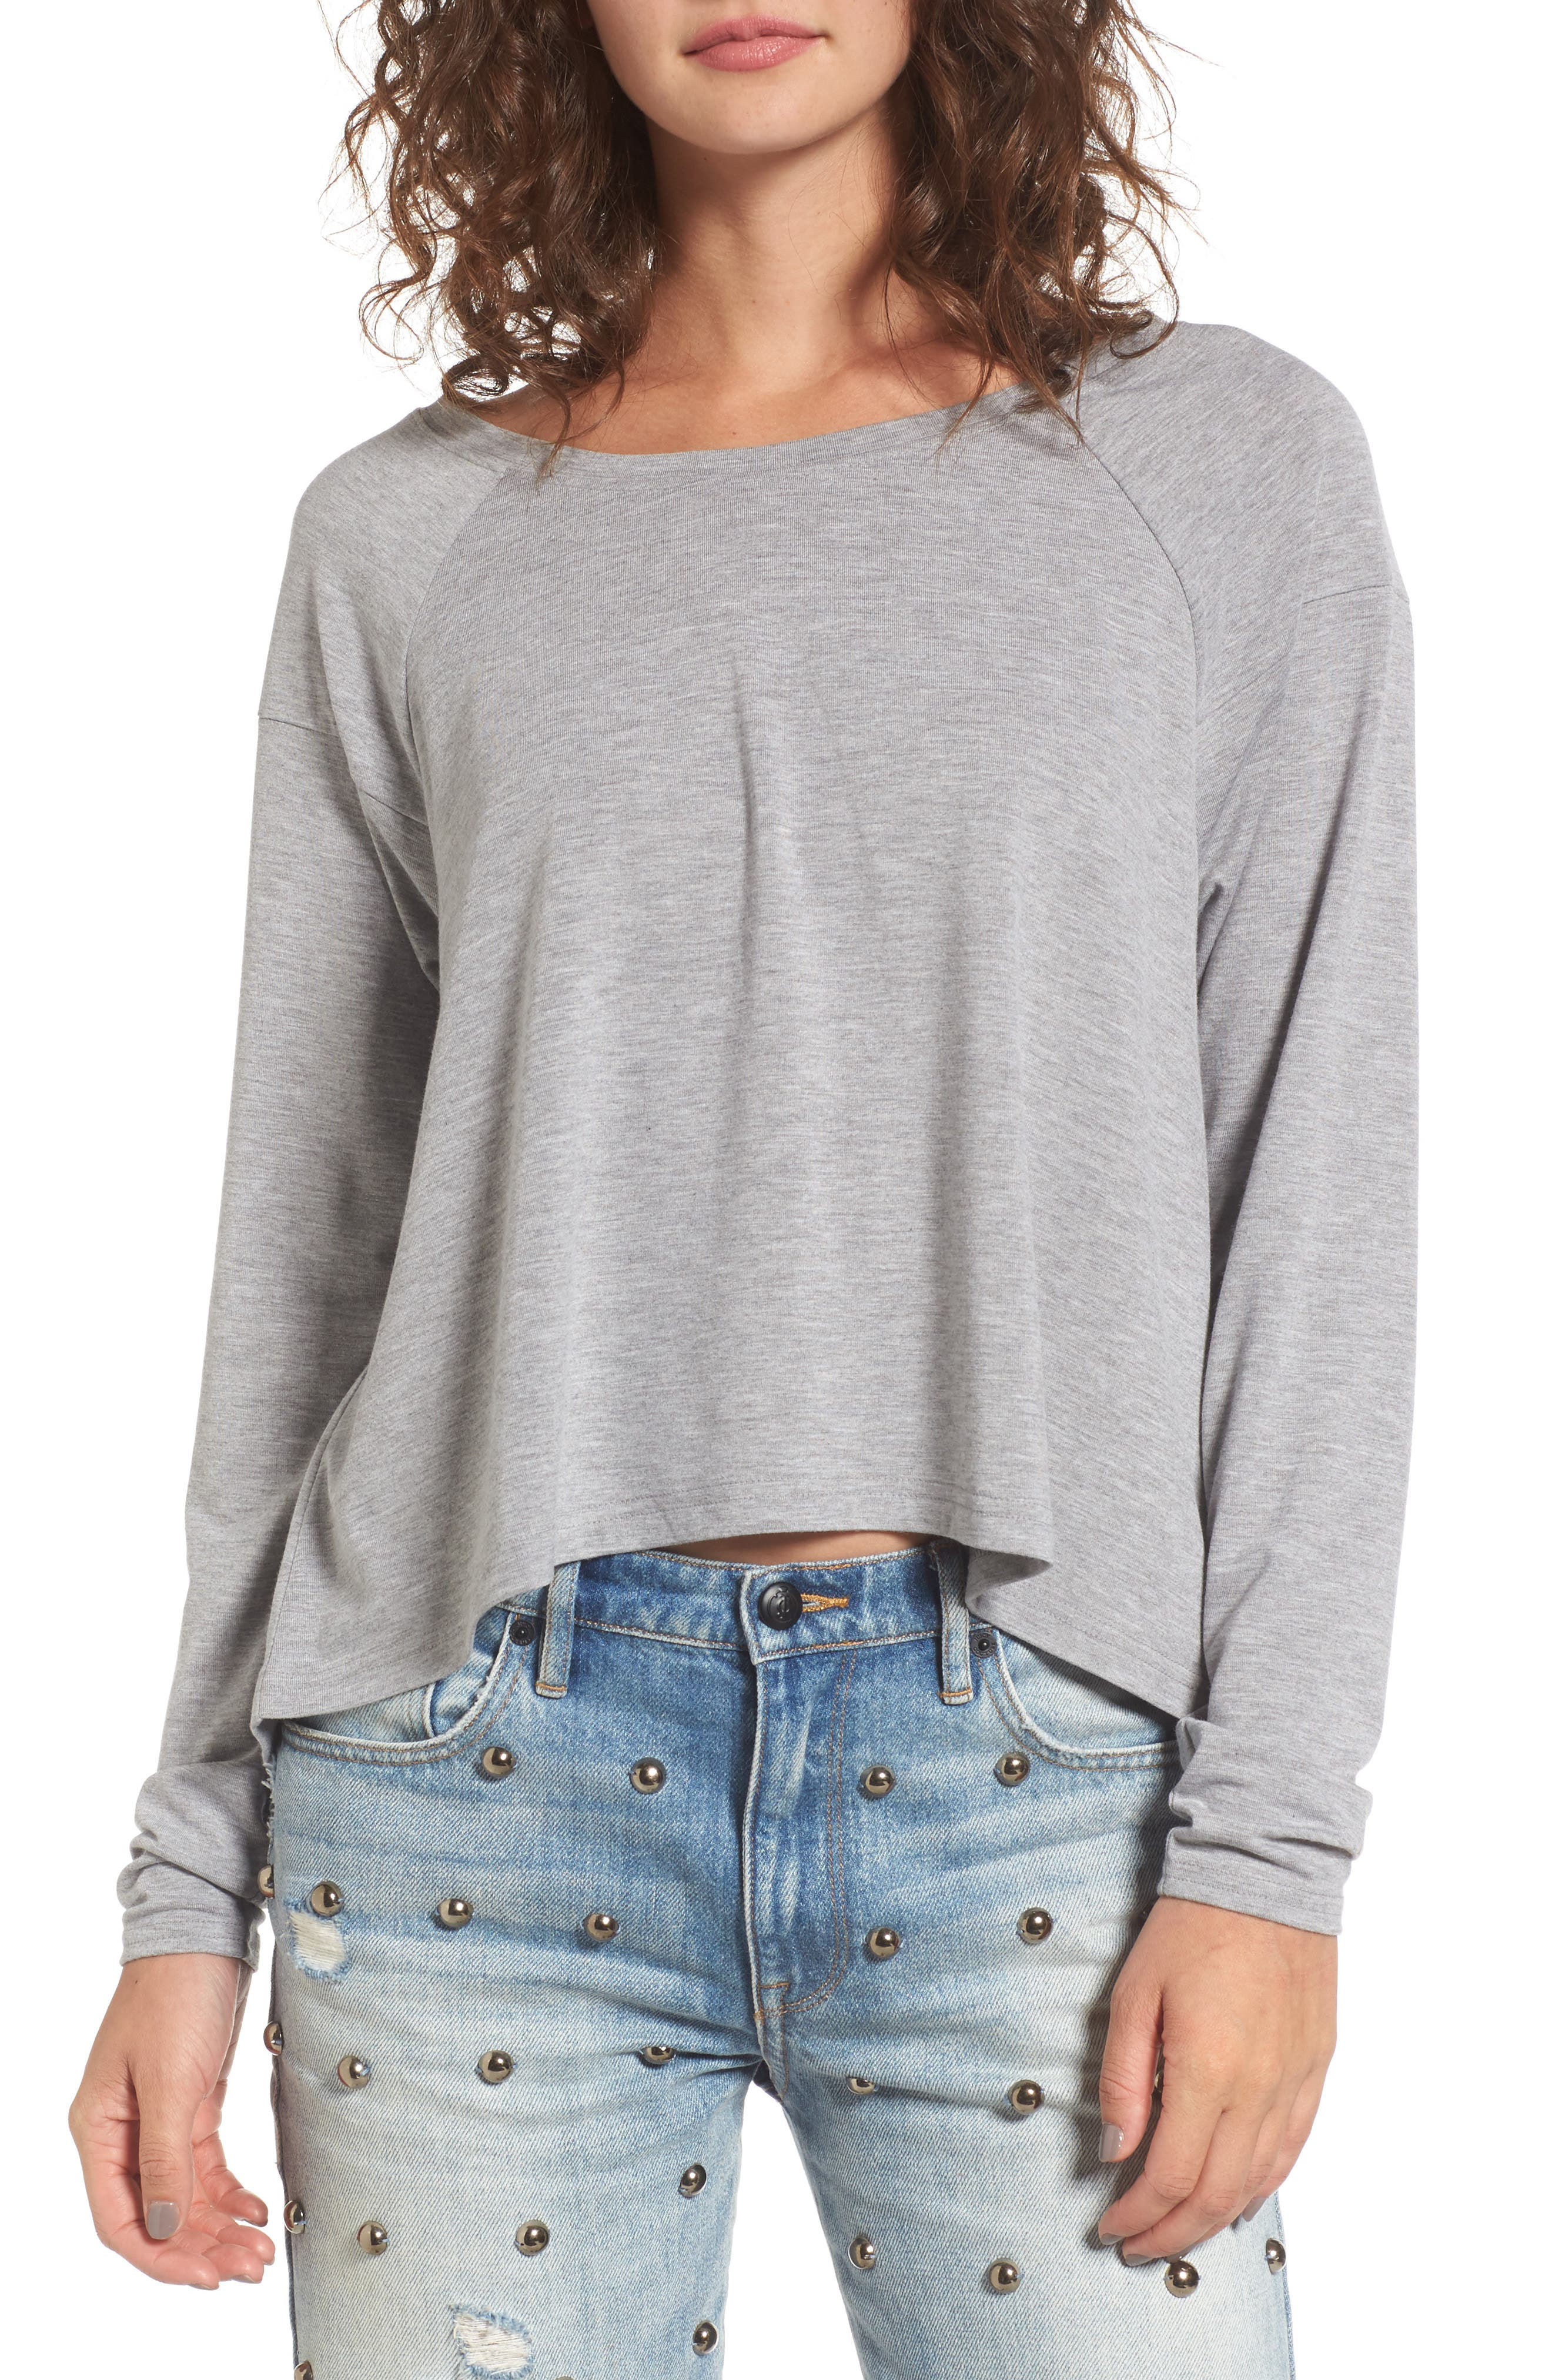 Juicy Couture Jersey Pullover